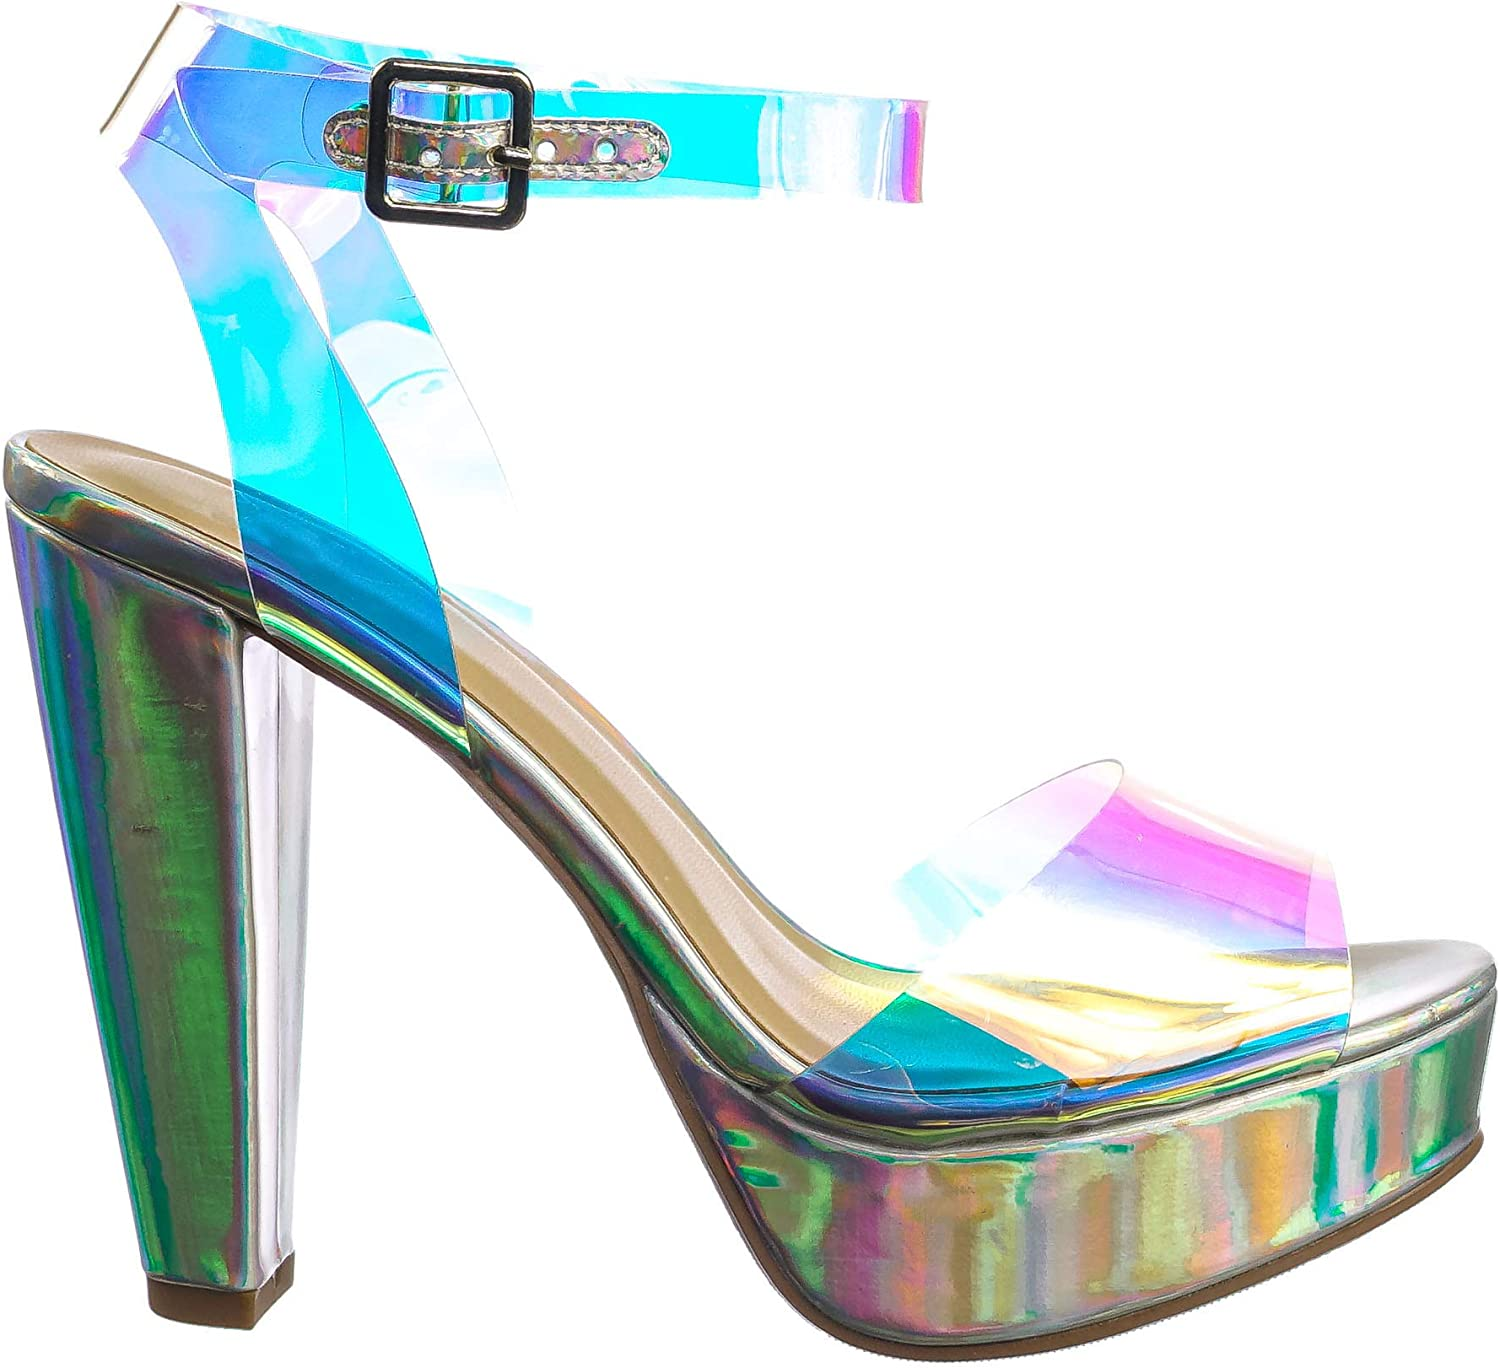 Clear San Diego Mall Lucite Heel Sandal - Pla Transparent Ankle Outstanding Strapped Womens